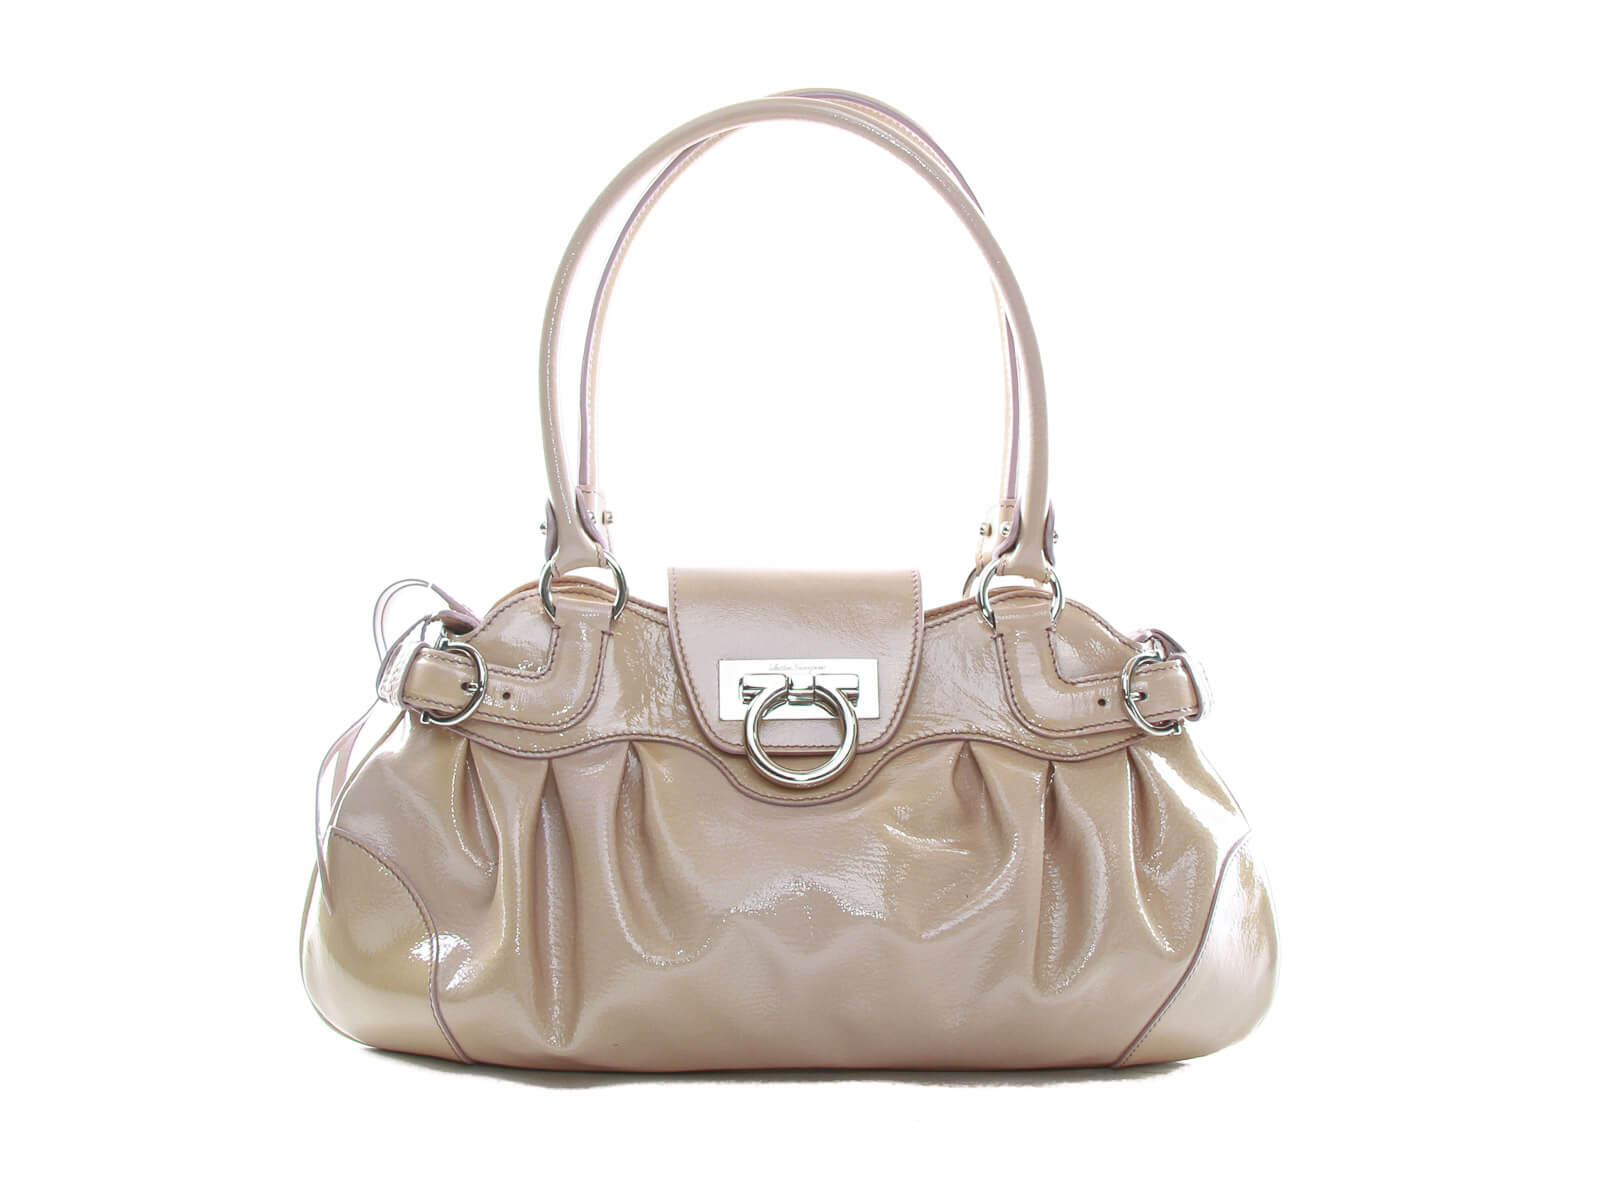 Authentic Salvatore Ferragamo beige patent leather shoulder bag